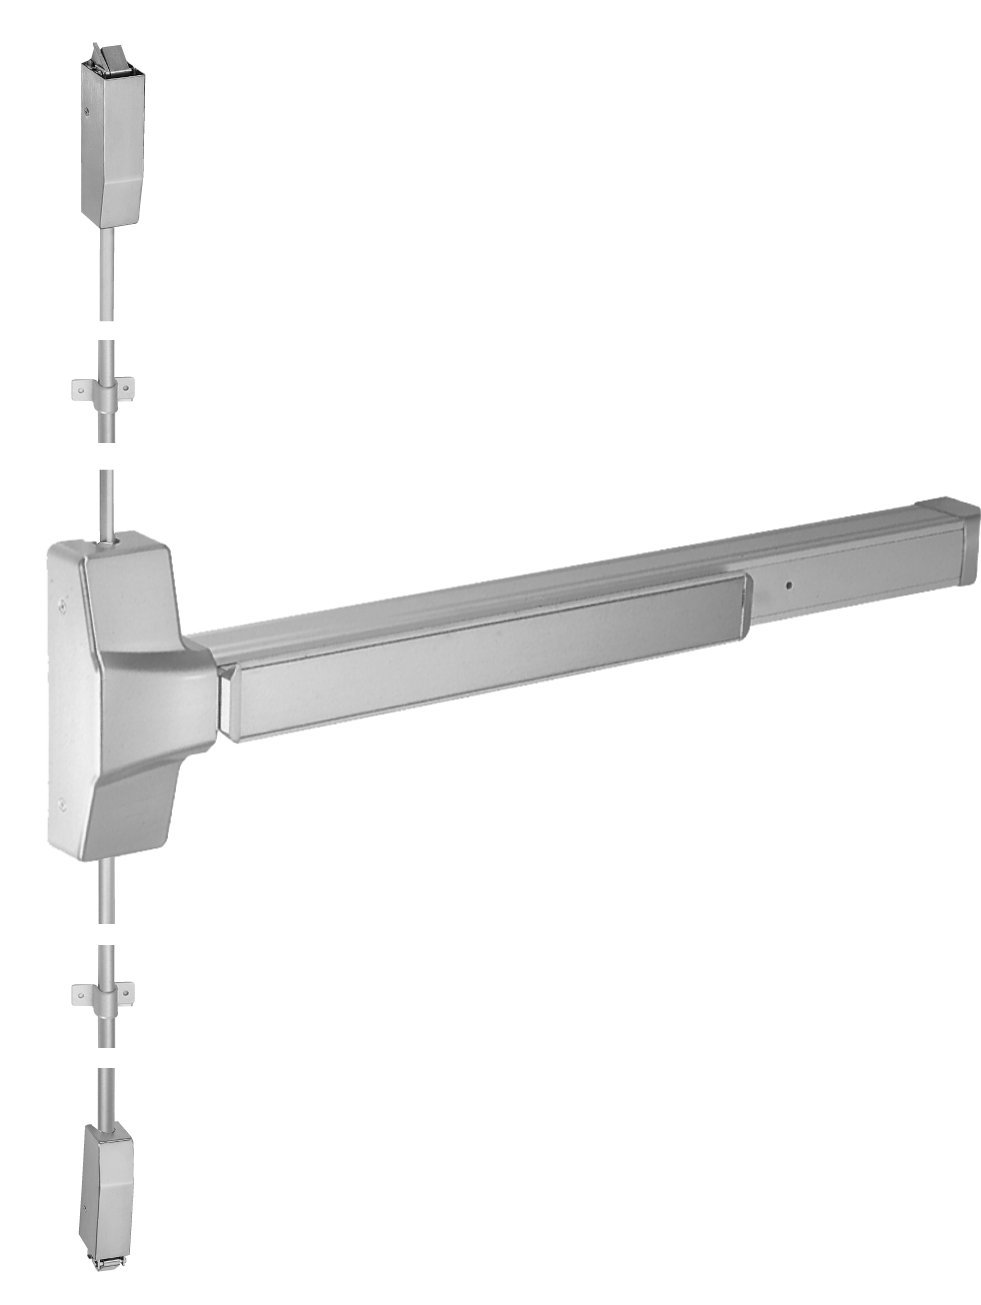 36 Length Independence2 i.2-EDF800GR1V Brushed//Satin Stainless Steel Grade 1 Fire Rated Surface Vertical Rod Exit Device